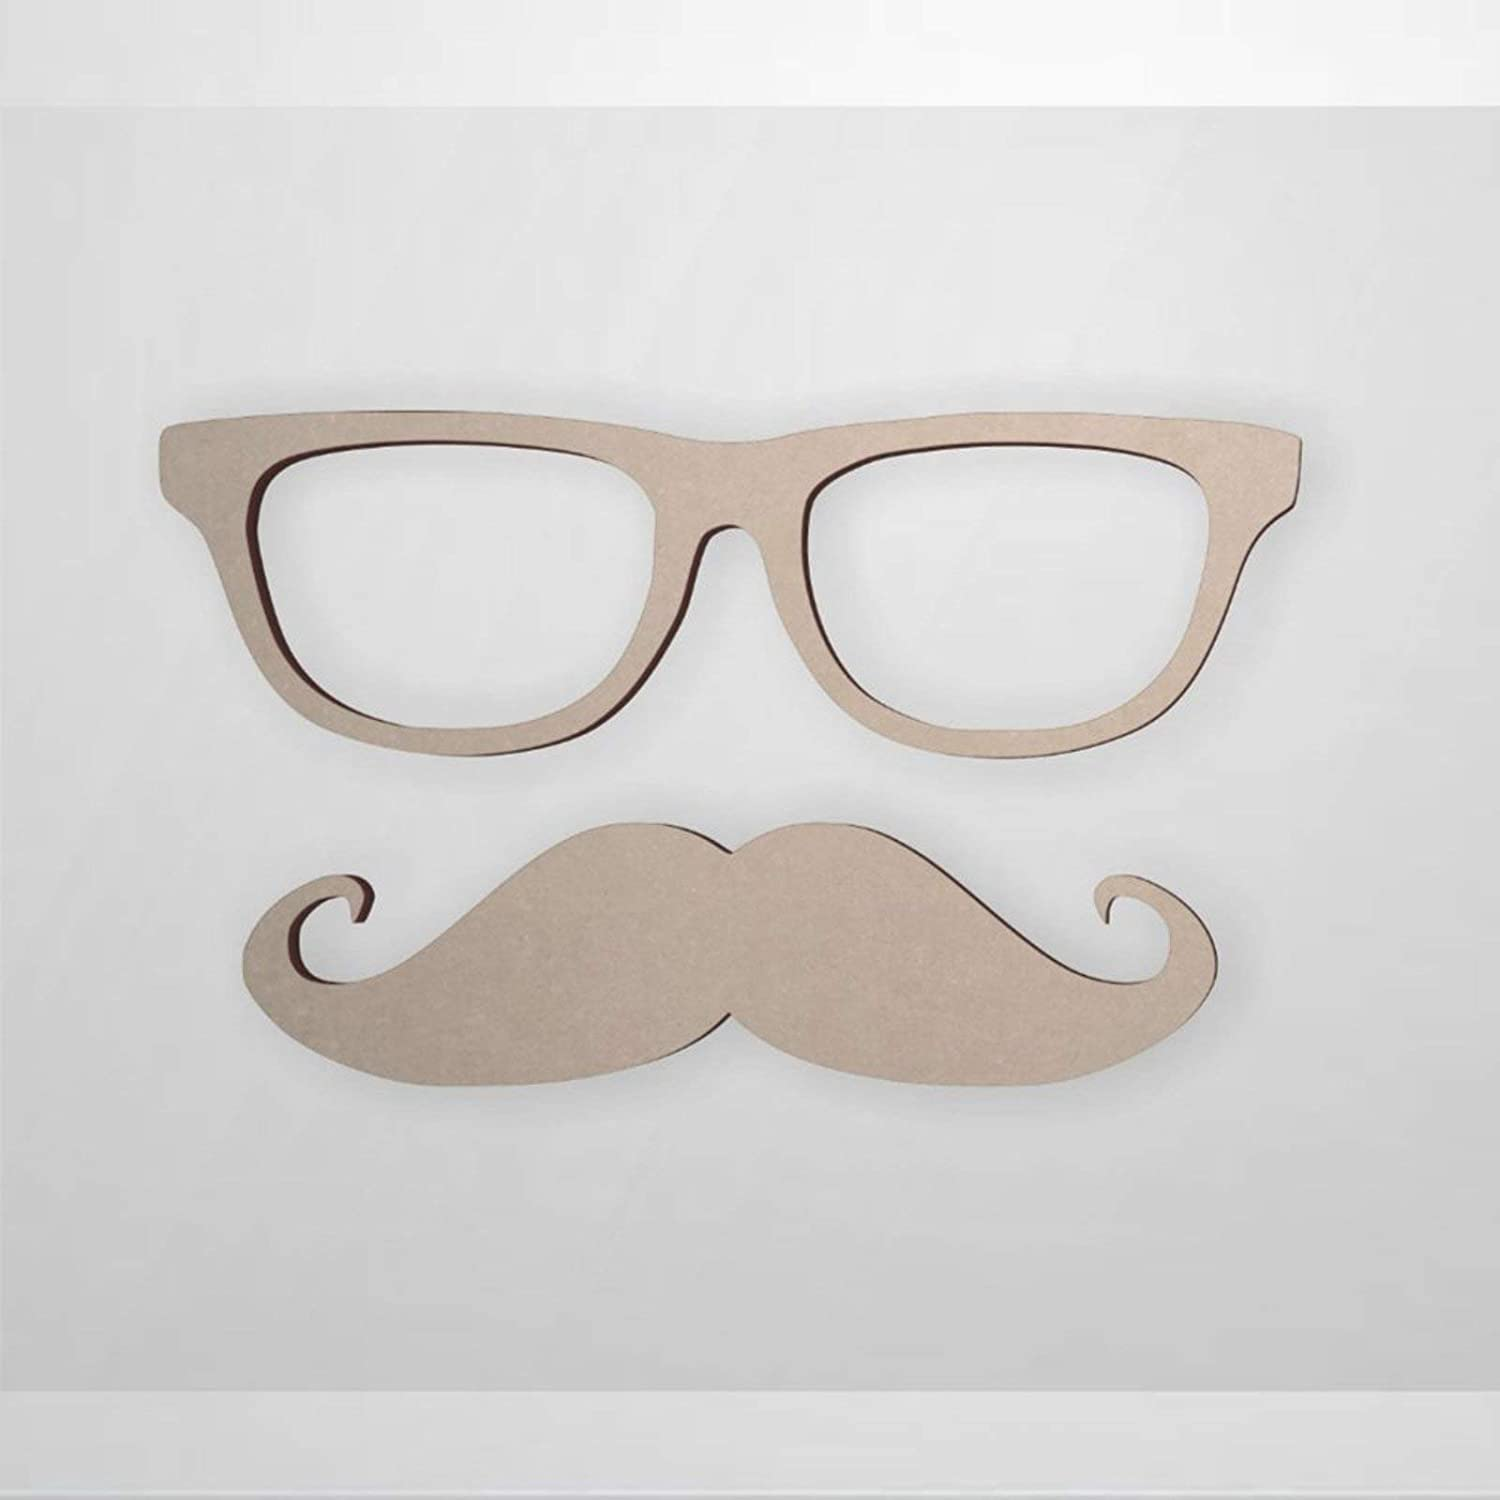 BYRON HOYLE Glasses and Mustache Wood Craft,Unfinished Wooden Cutout Art,Inspirational Farmhouse Wall Plaque,Rustic Home Decor for Living Room,Nursery,Bedroom,Porch,Gallery Wall